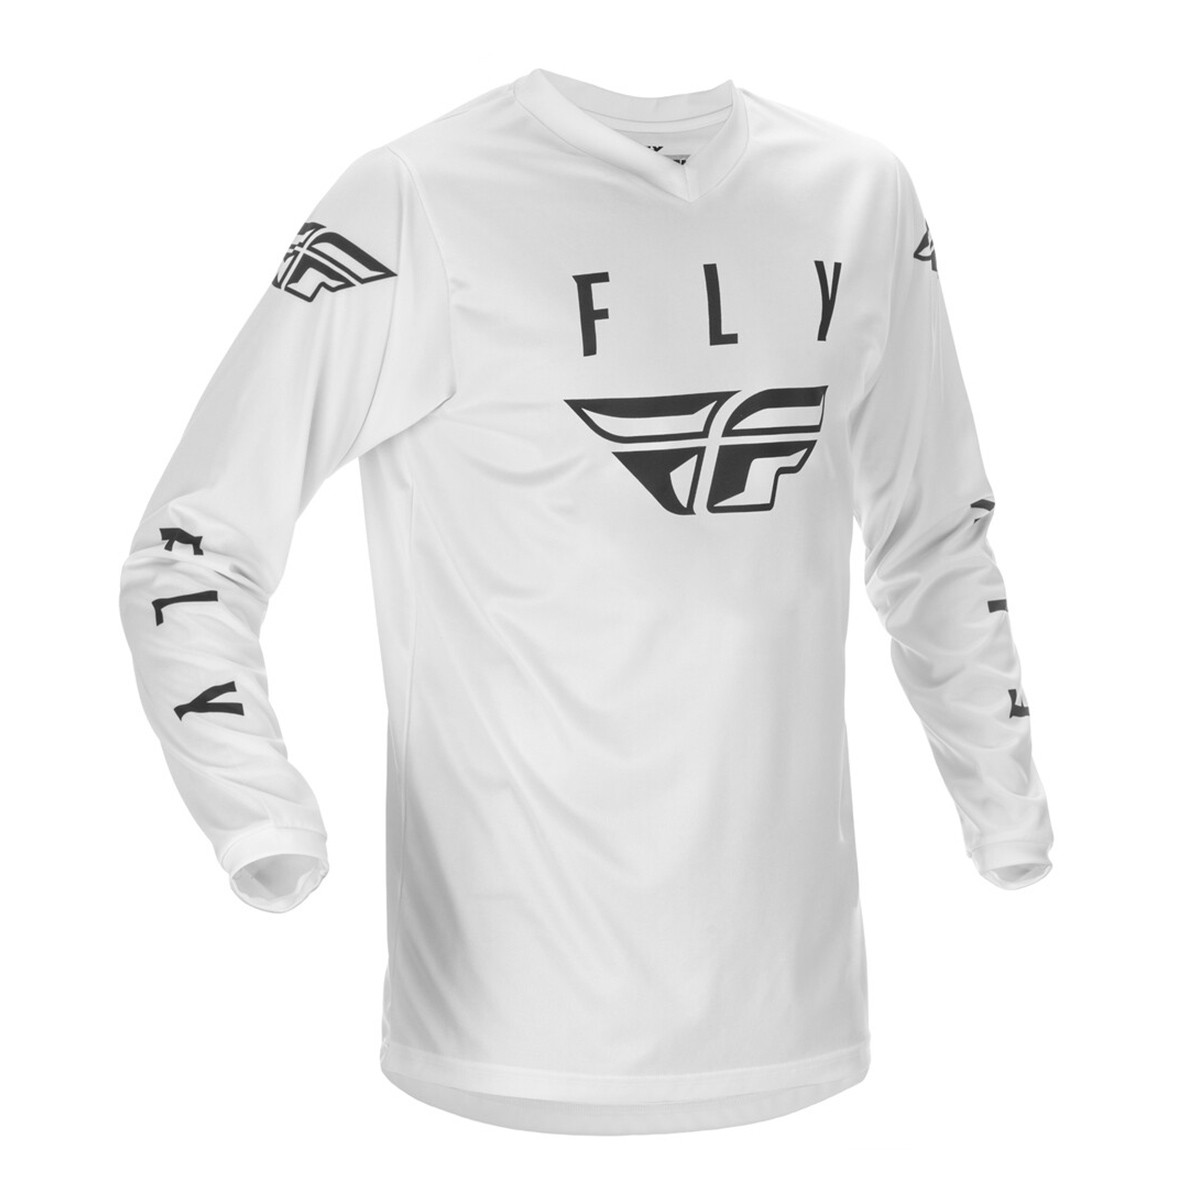 FLY UNIVERSAL 2021 JERSEY